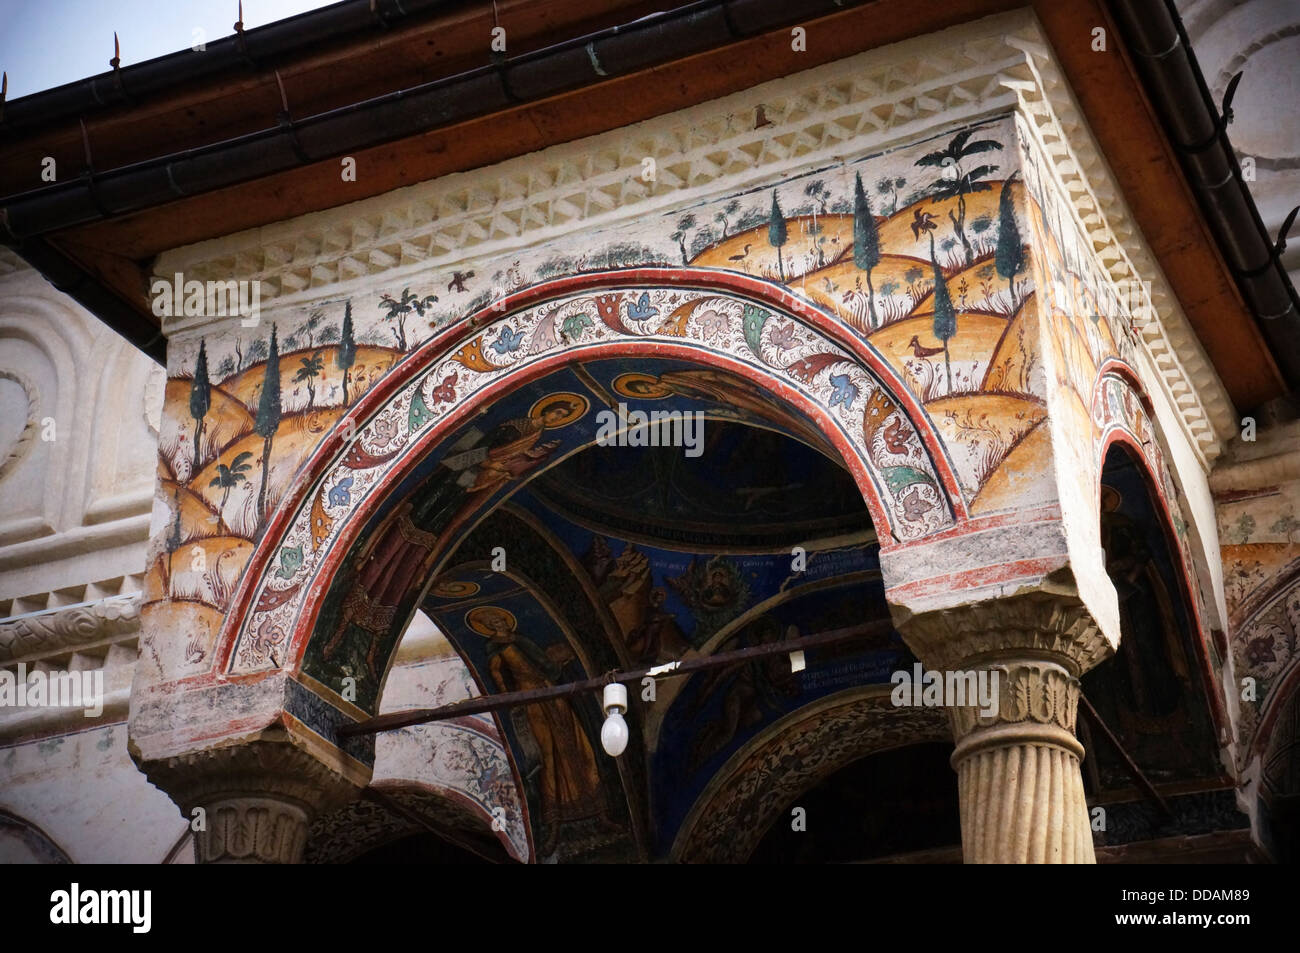 Painted decorations on the church of the Polivragi Museum in Romania - Stock Image